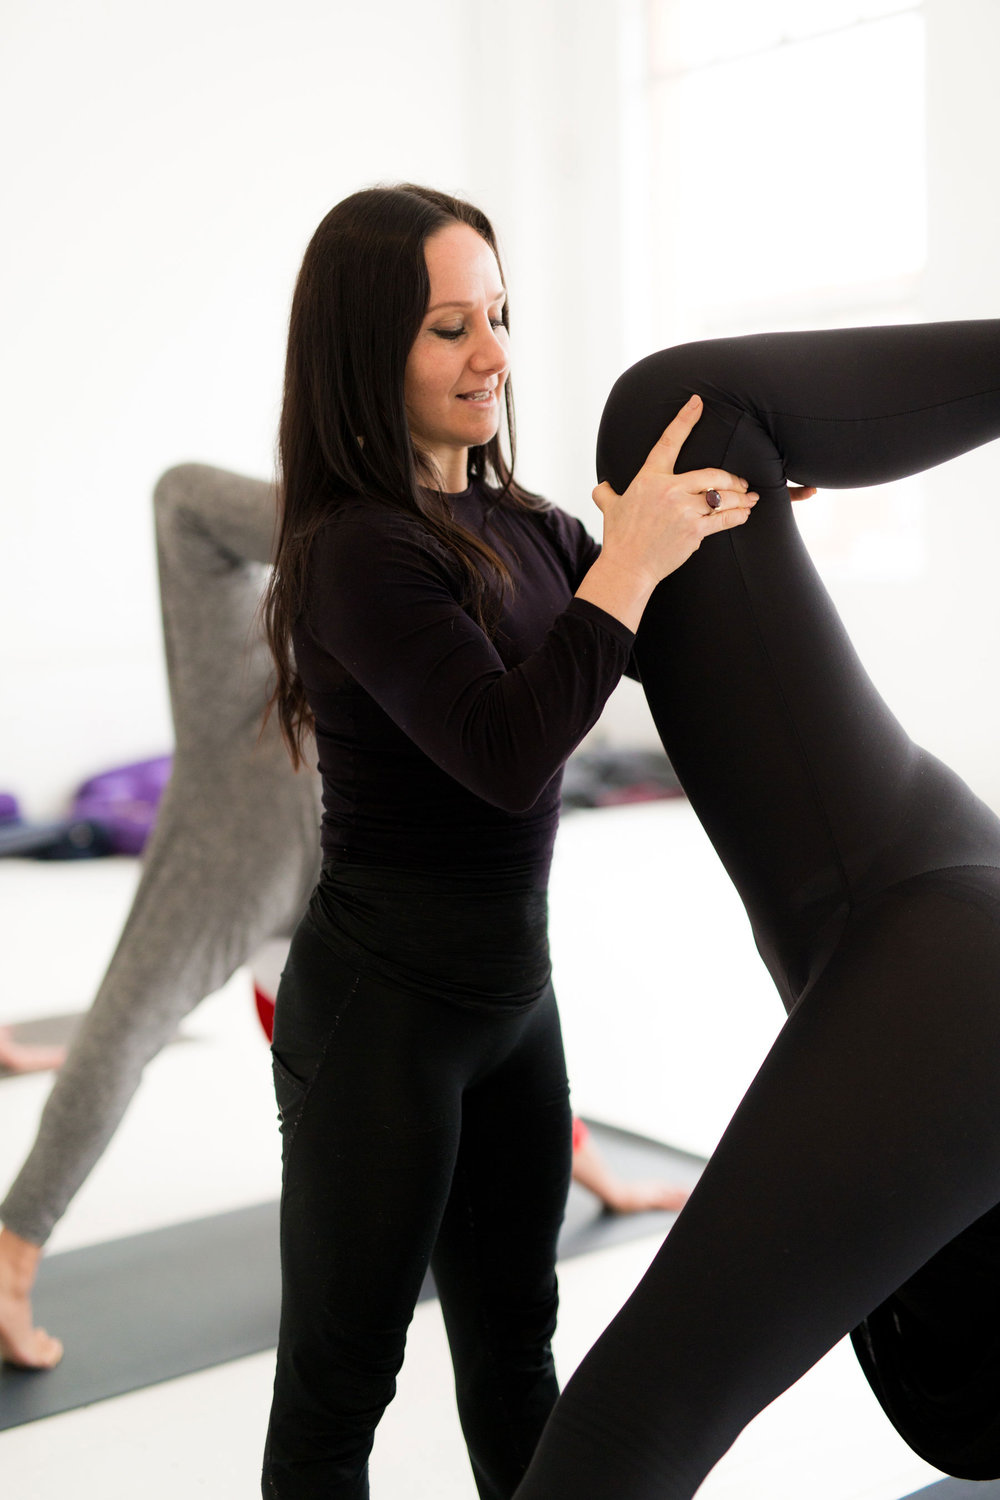 Prana House Yoga Teacher Training 2019 - Prana House Yoga Teacher Training are leaders in yoga education offering quality, in-depth, transformational & professional training that you won't find anywhere else in Australia.